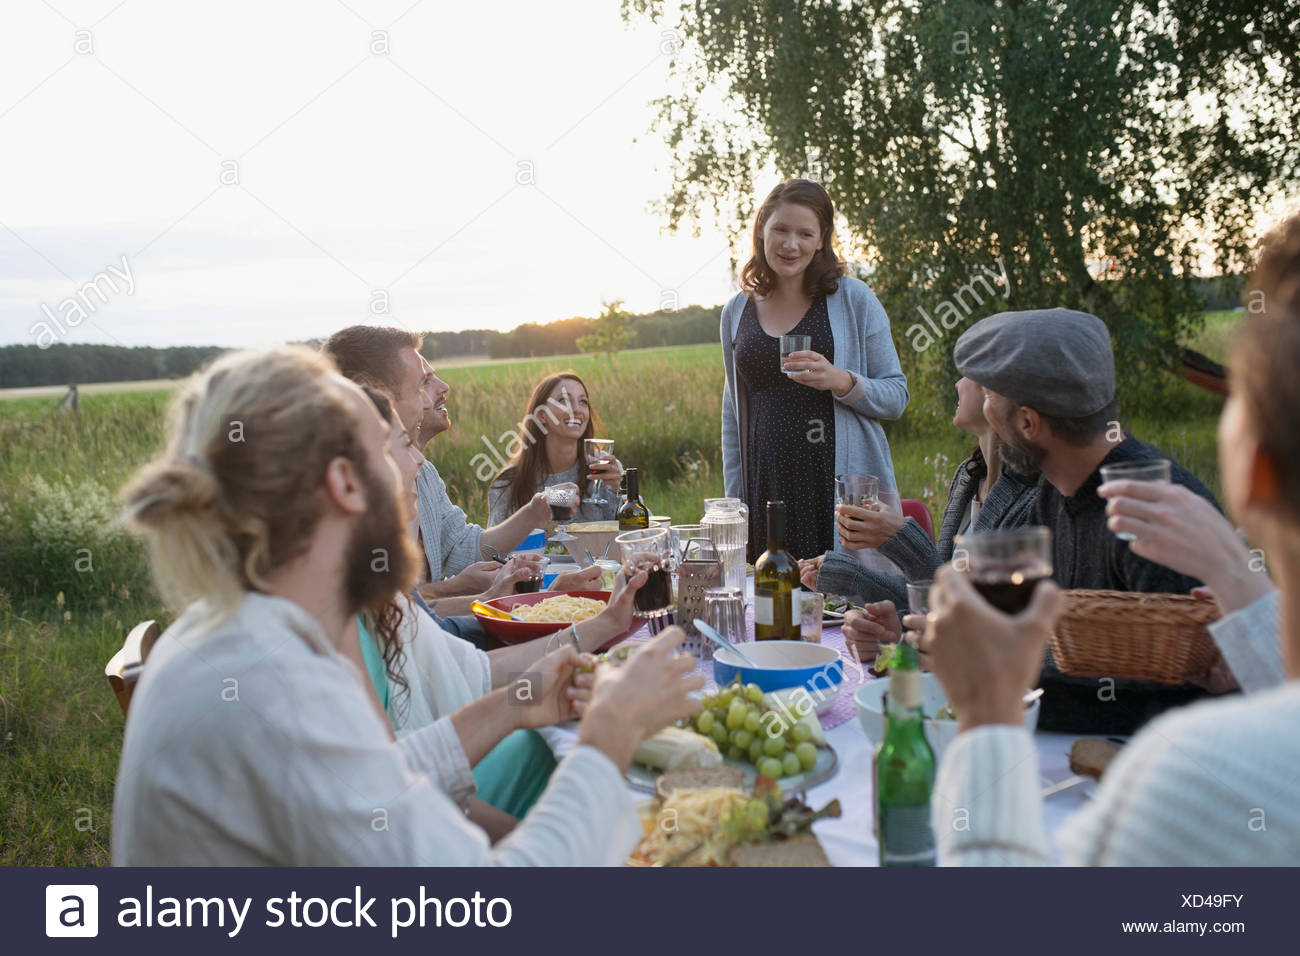 Pregnant woman toasting friends at garden party dinner in rural yard - Stock Image